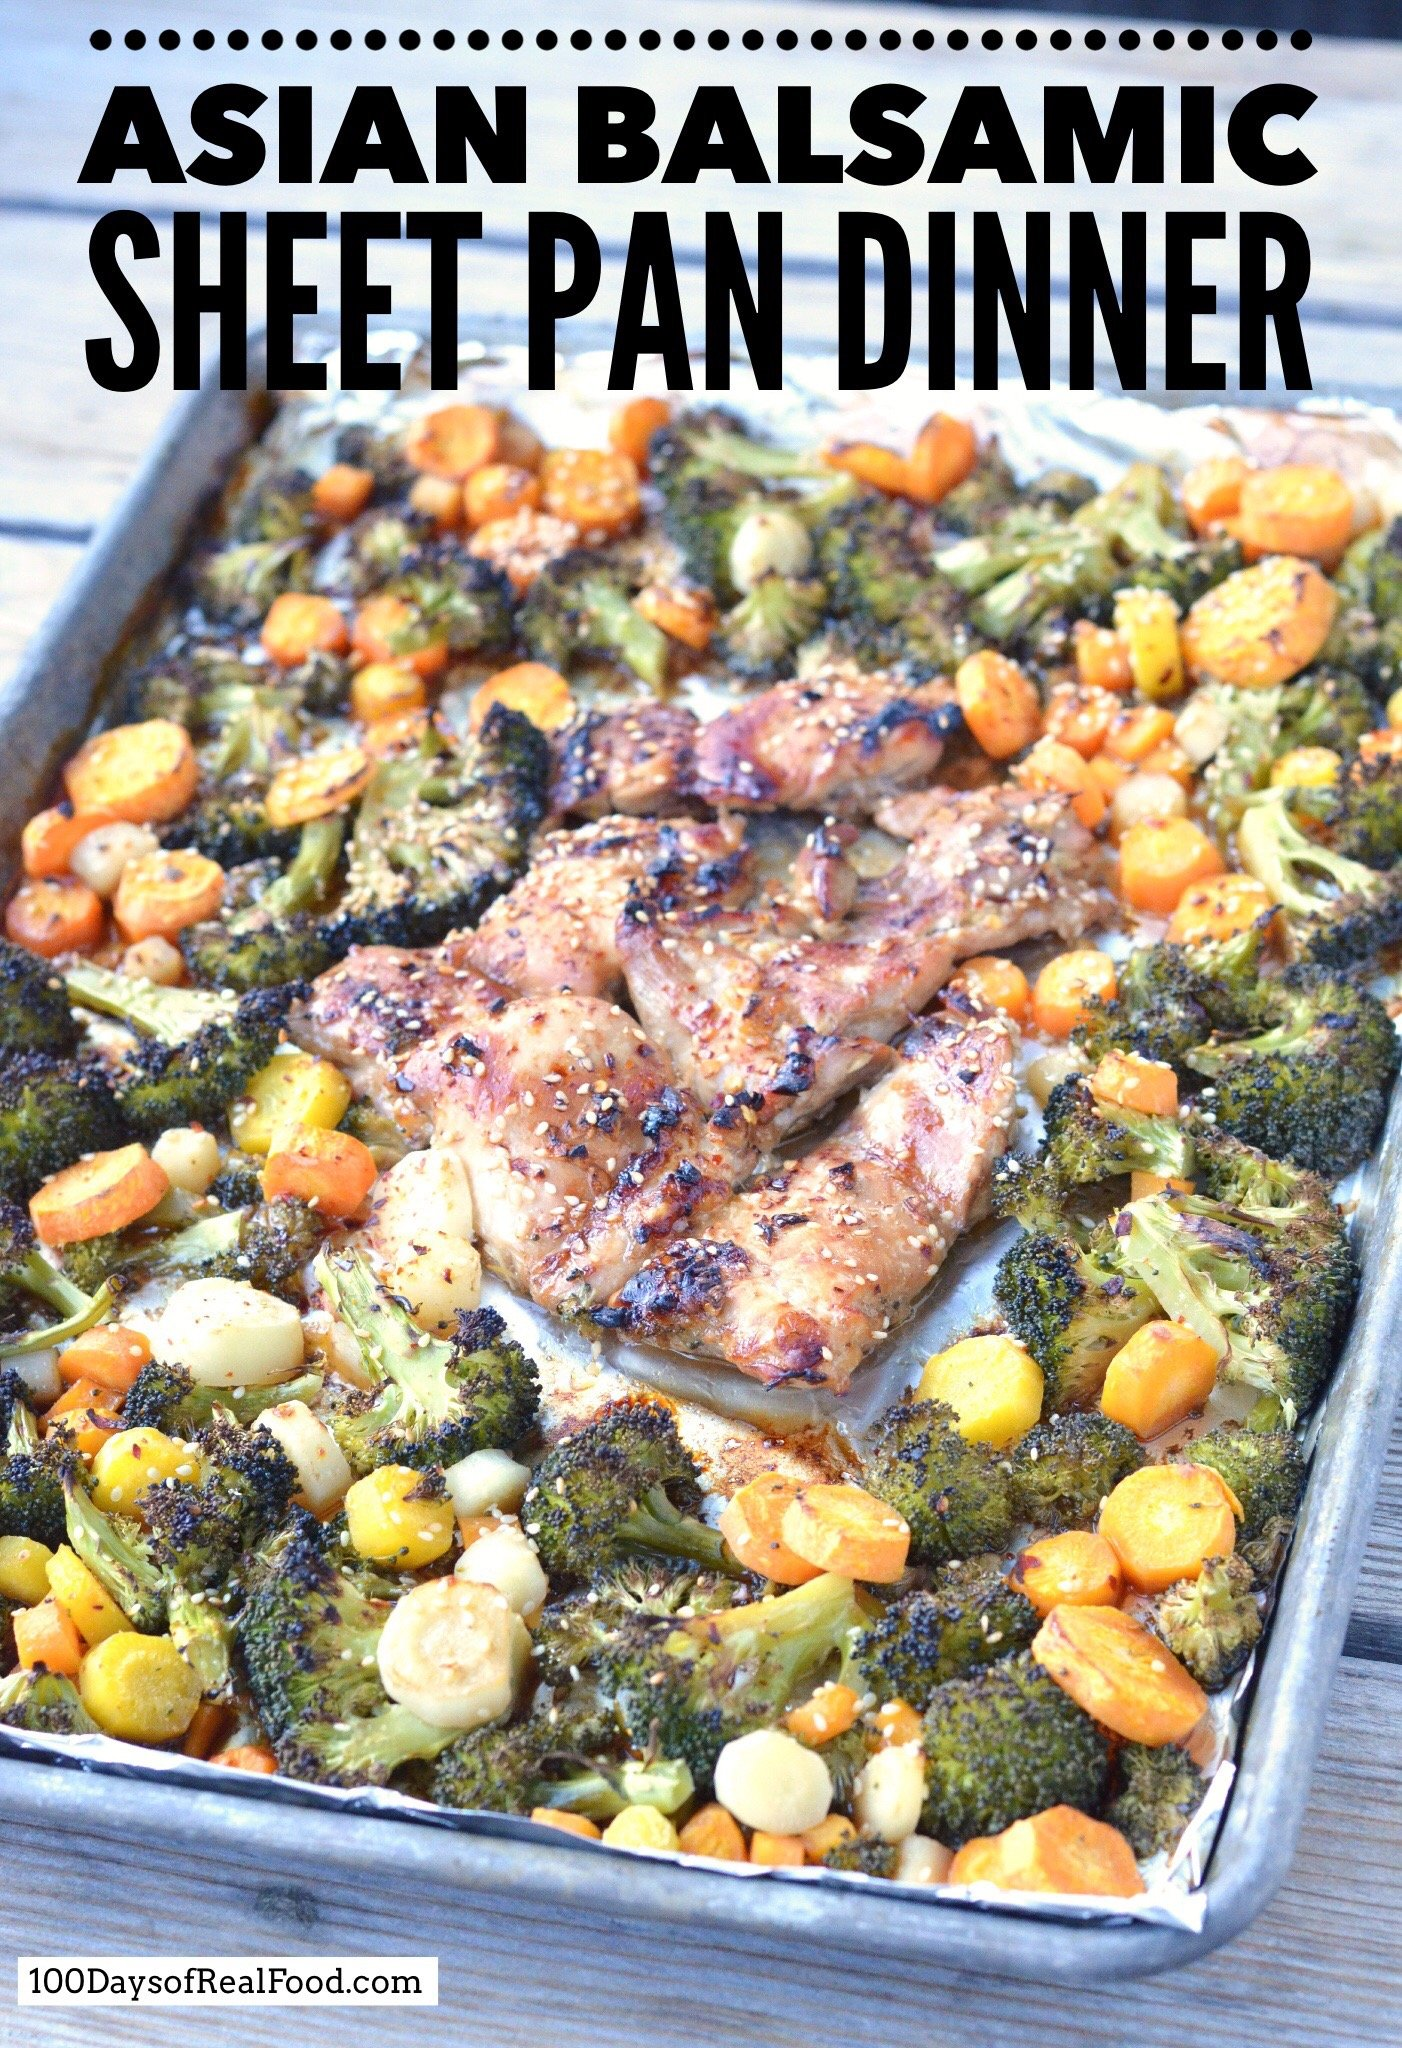 Asian Balsamic Sheet Pan Dinner on 100 Days of Real Food